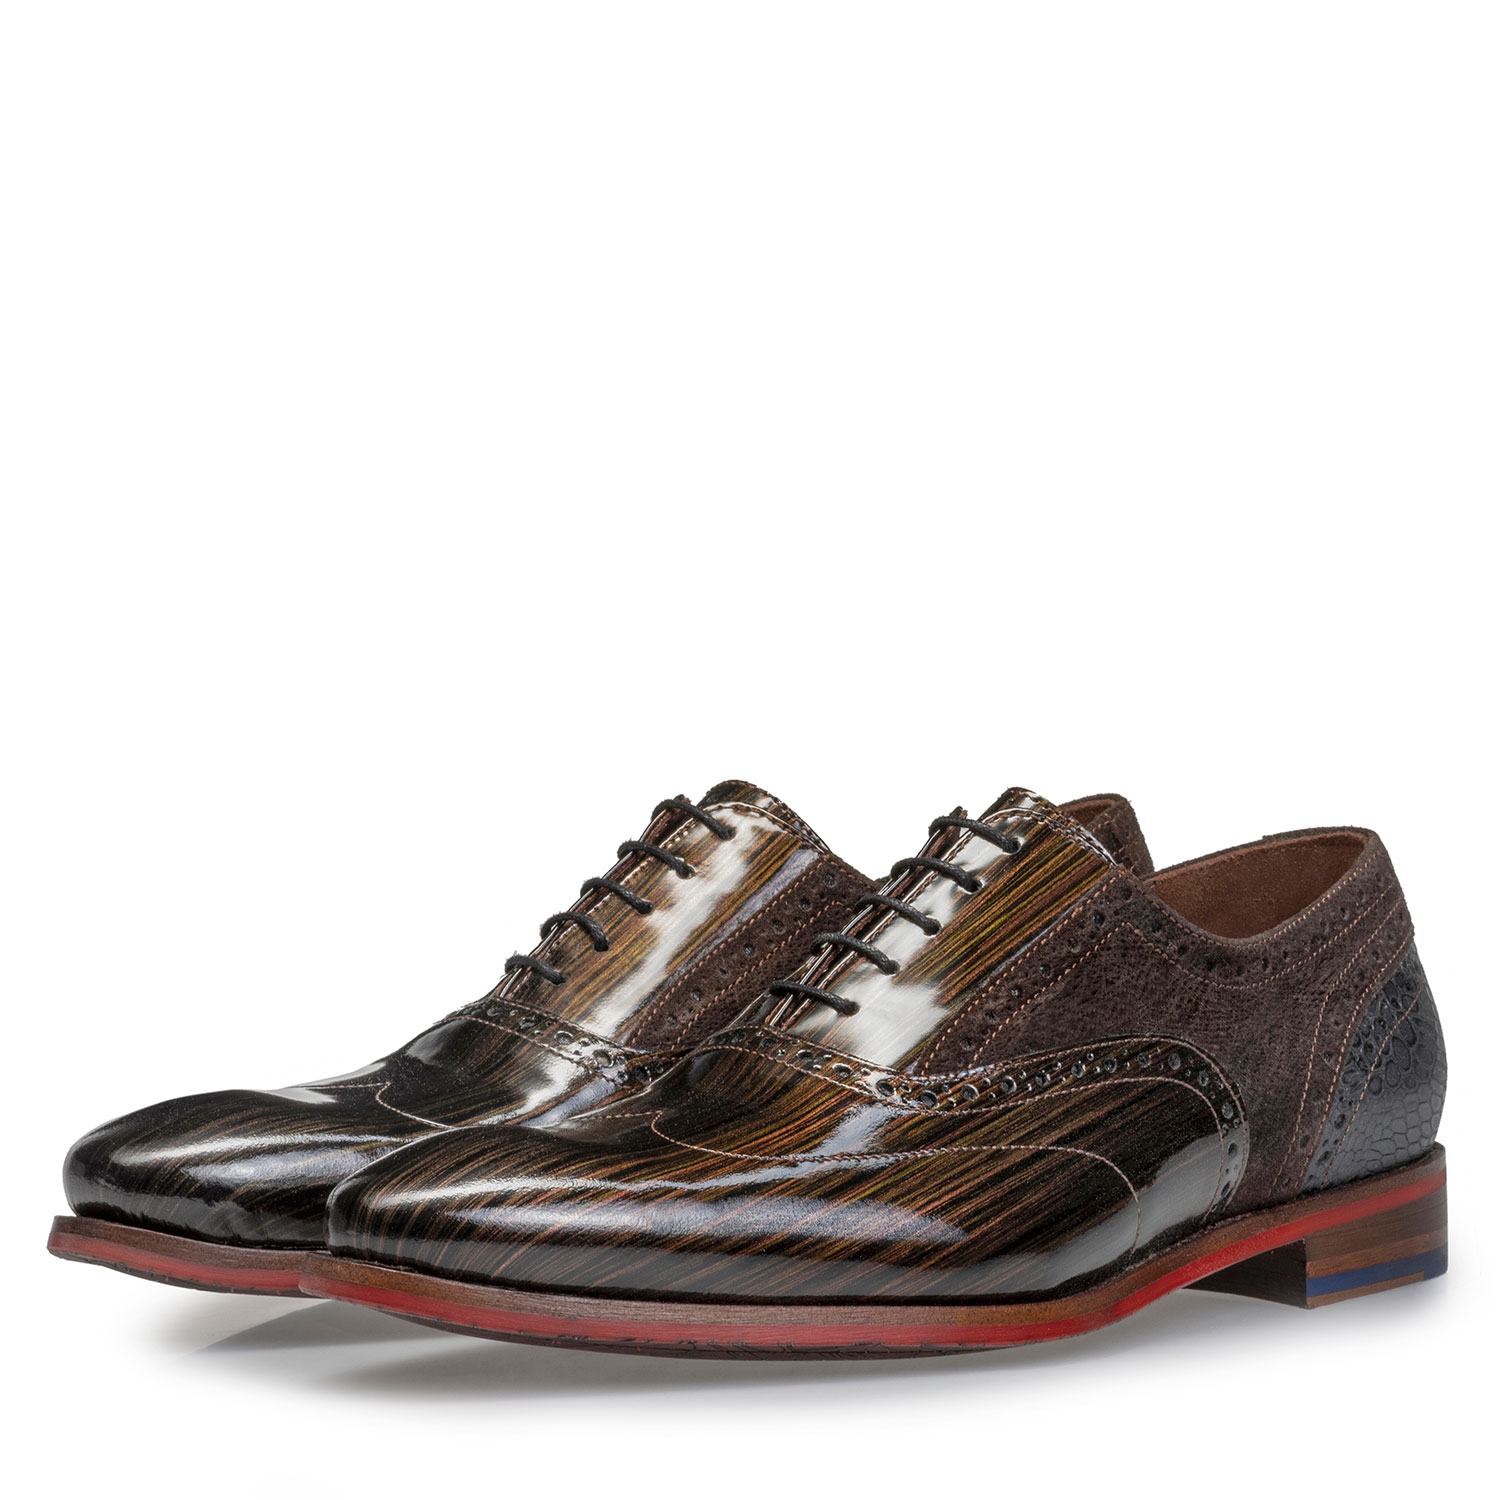 19124/03 - Brogue Lackleder bronzefarben